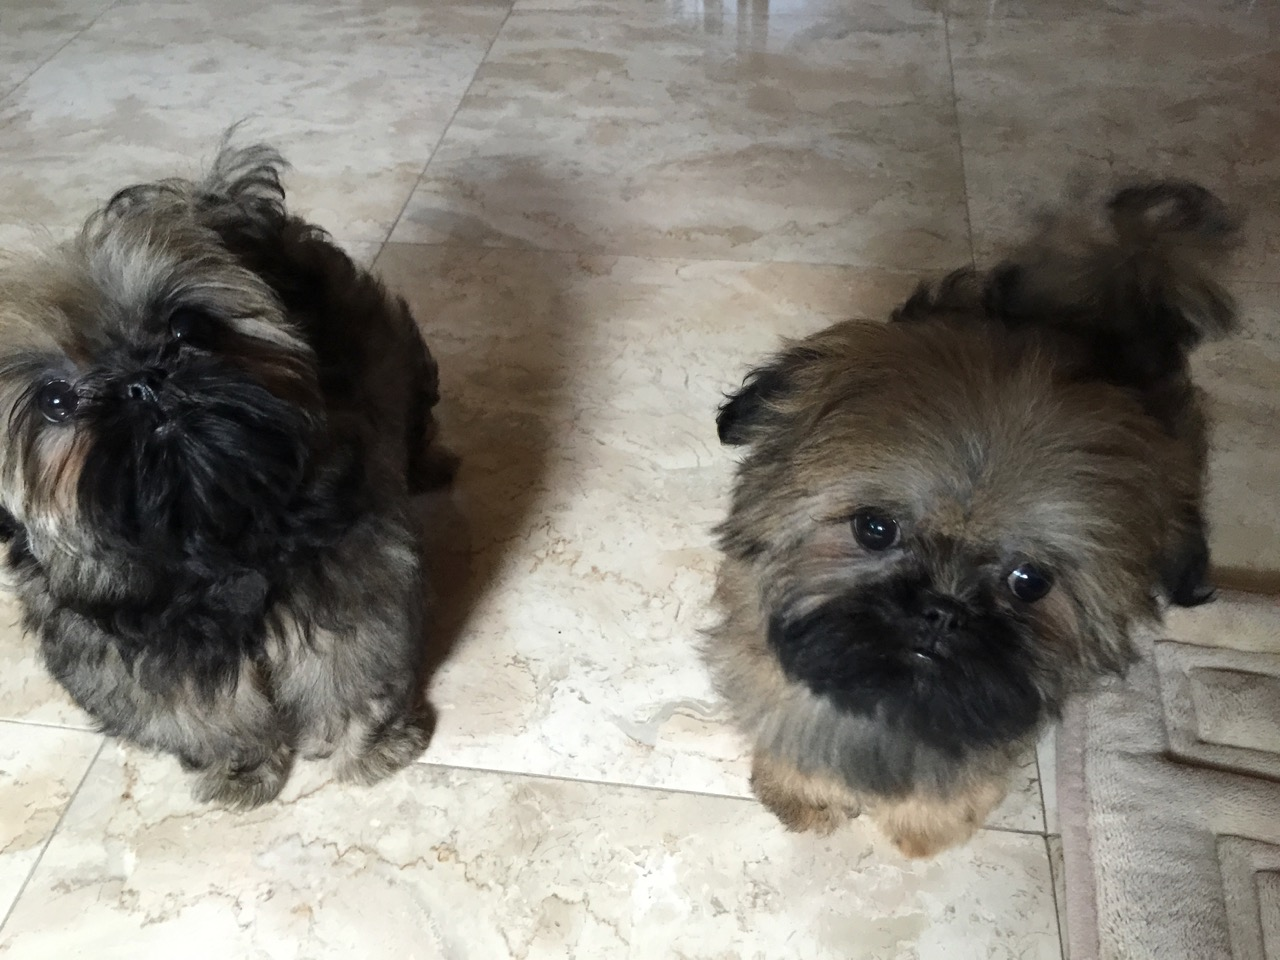 Two shih tzu puppies looking up